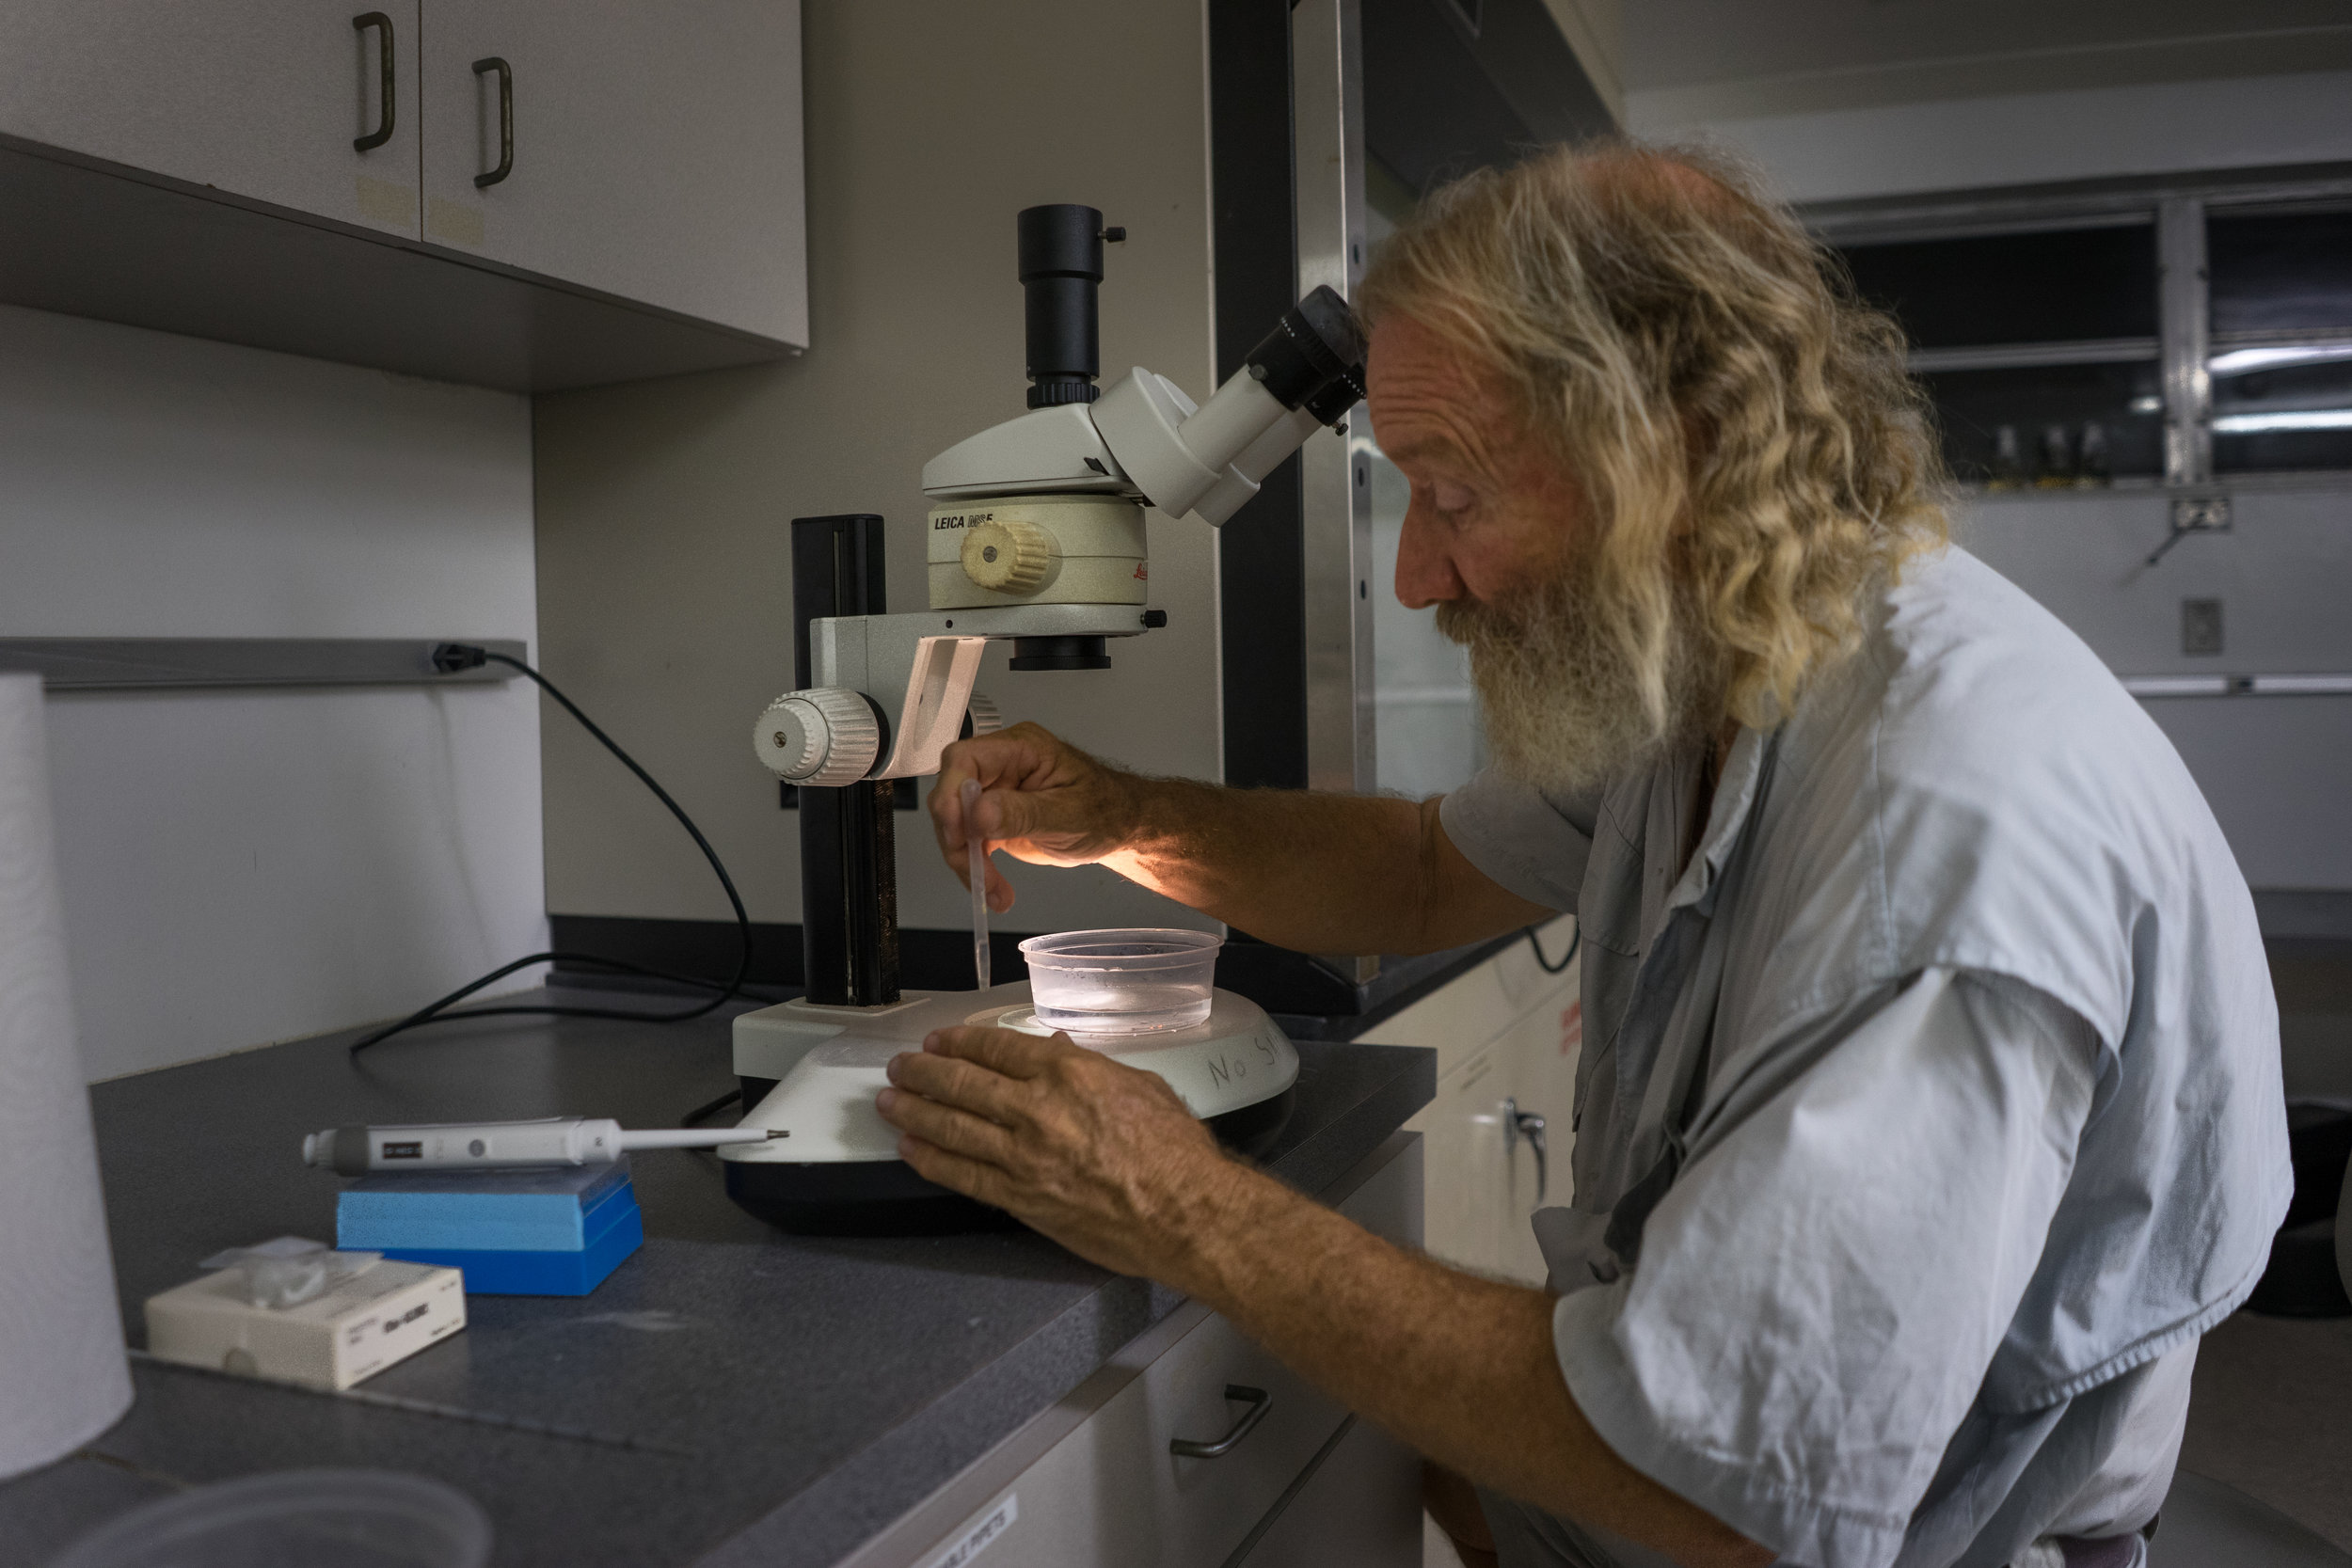 Dr. Dave Vaughan examining gametes to see if fertilization has occurred.